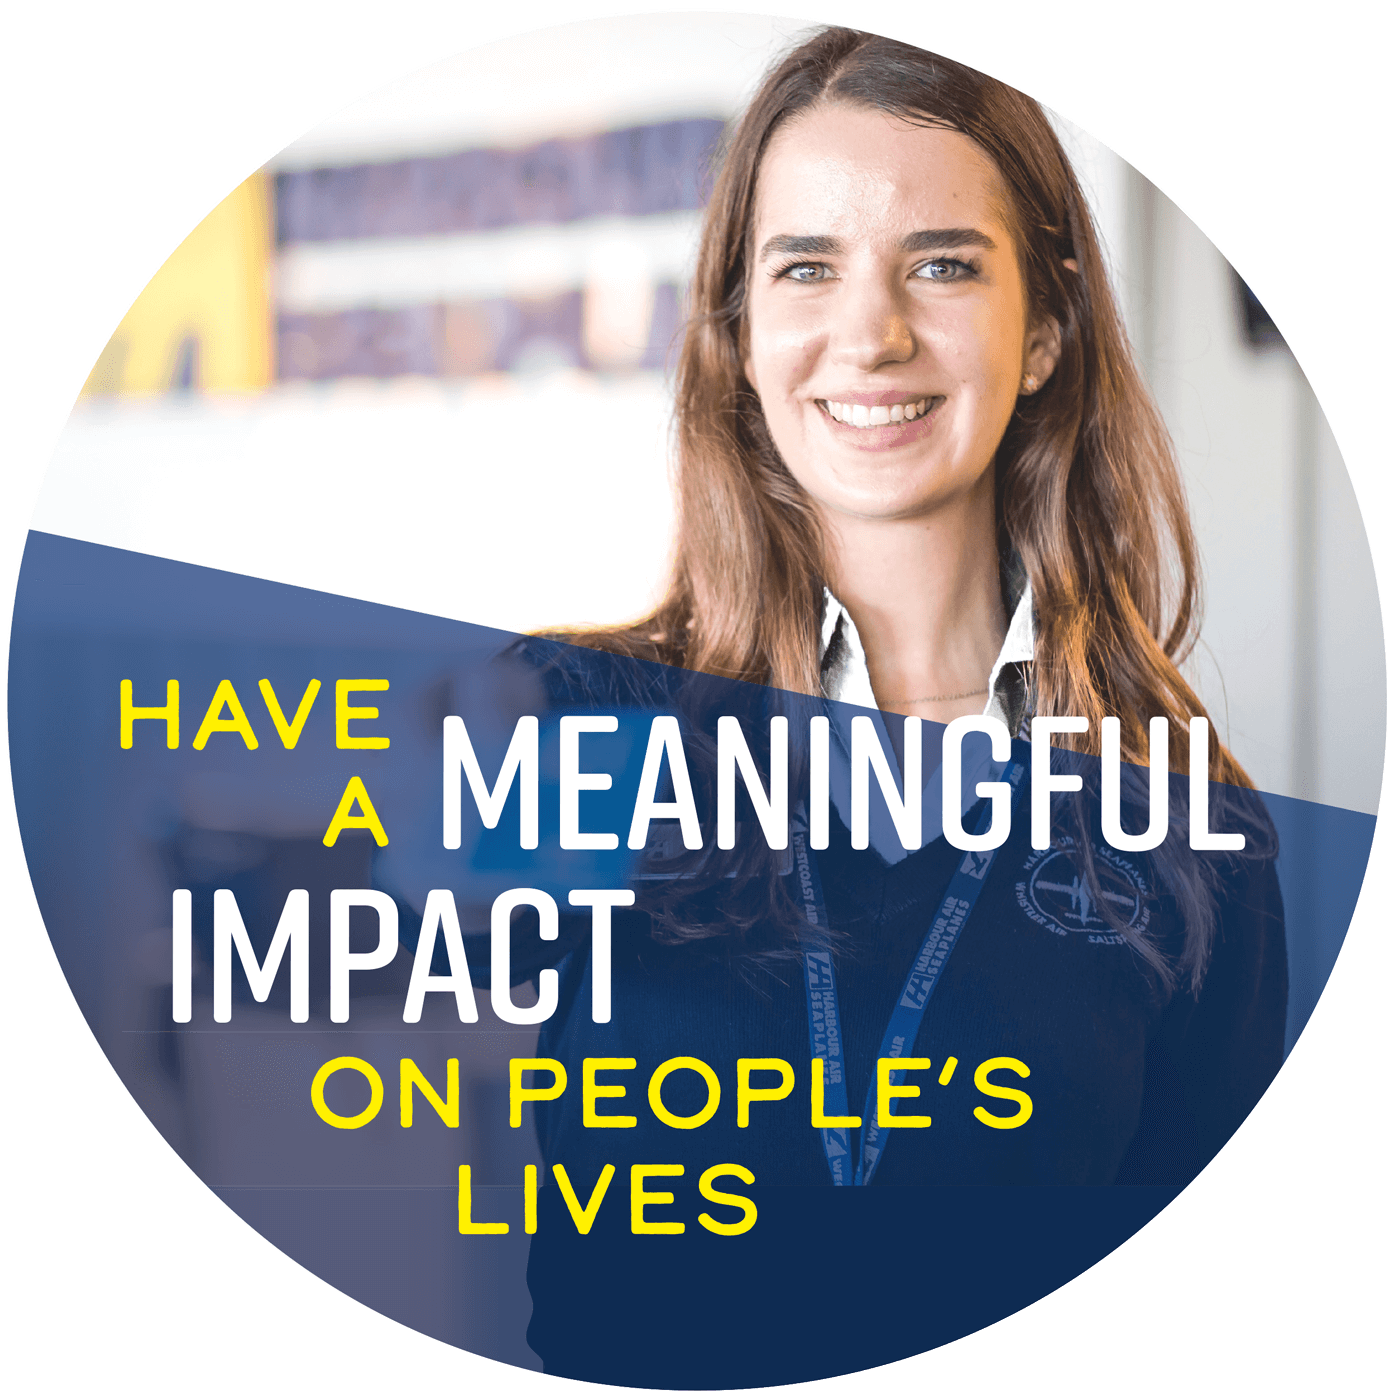 Have a meaningful impact of people's lives